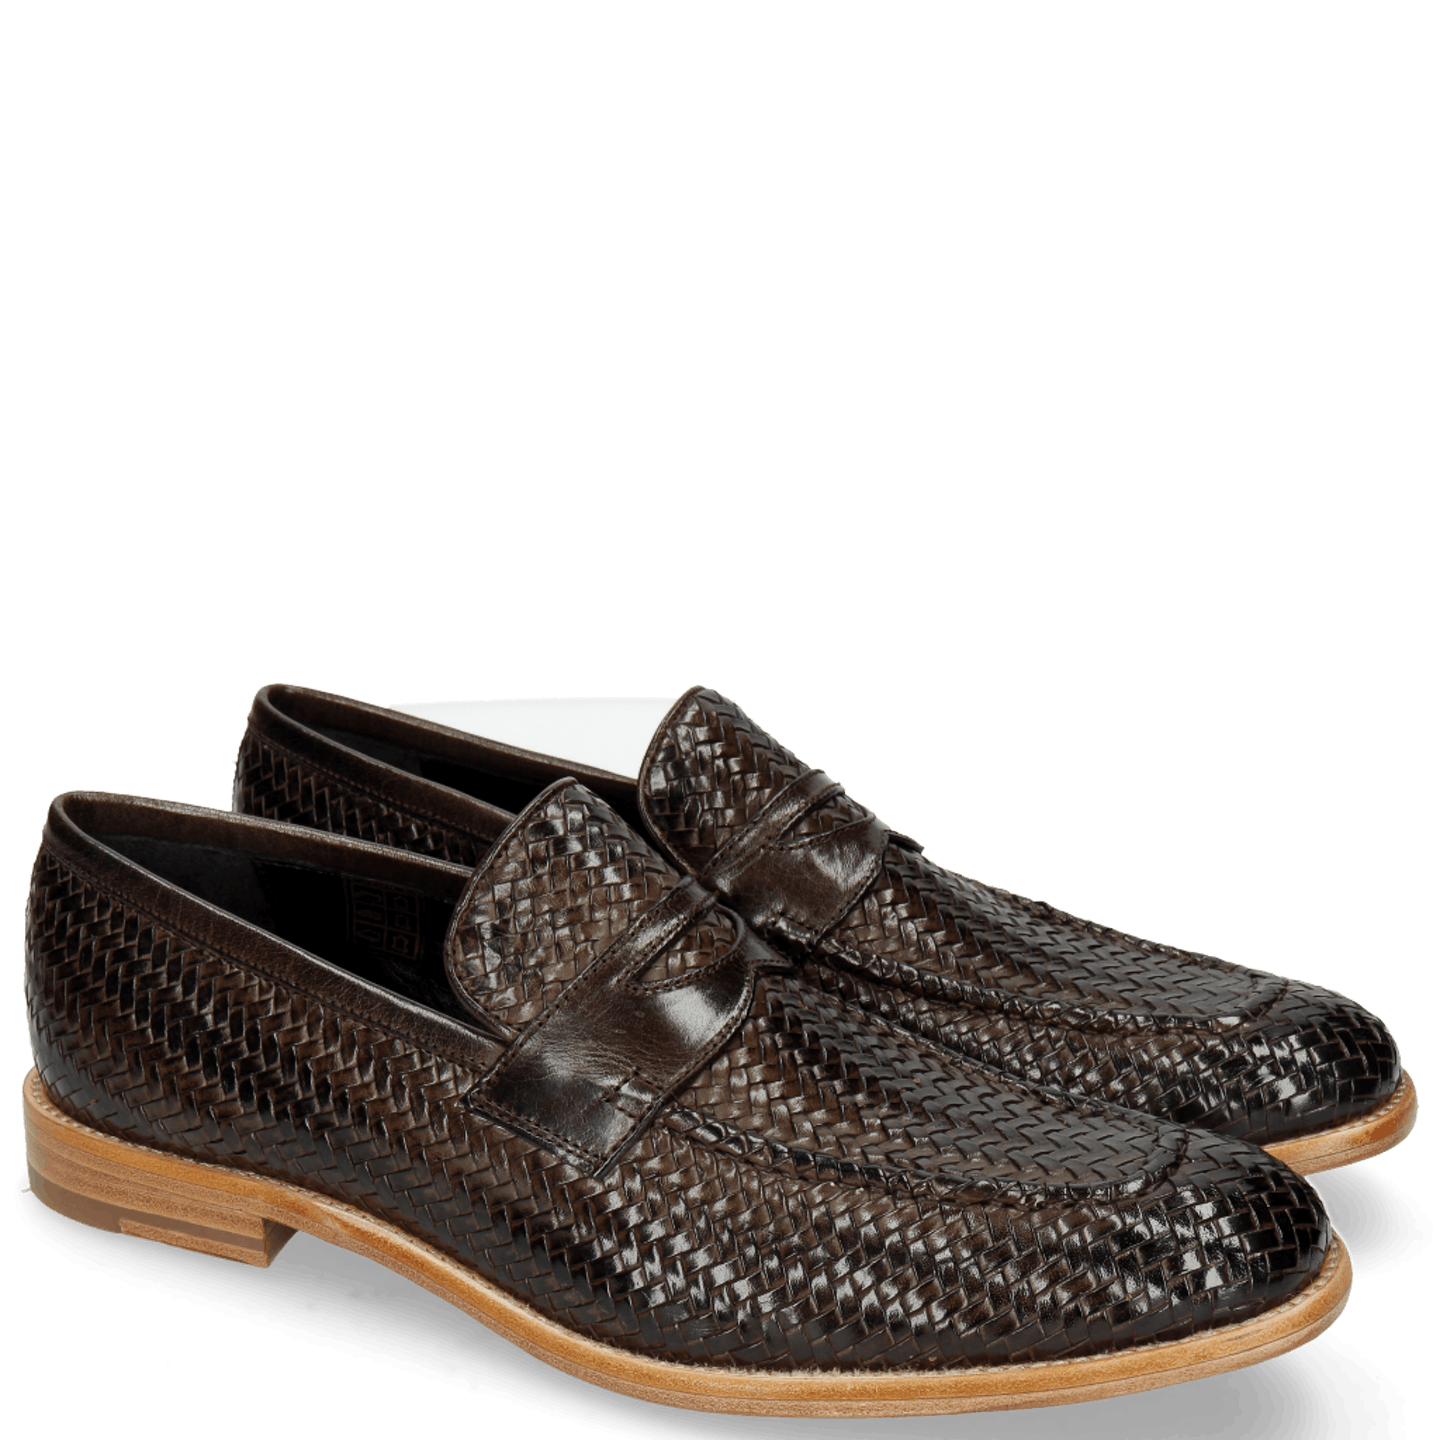 Eddy 44 Haring Bone Weave Dark Brown Lining Nappa